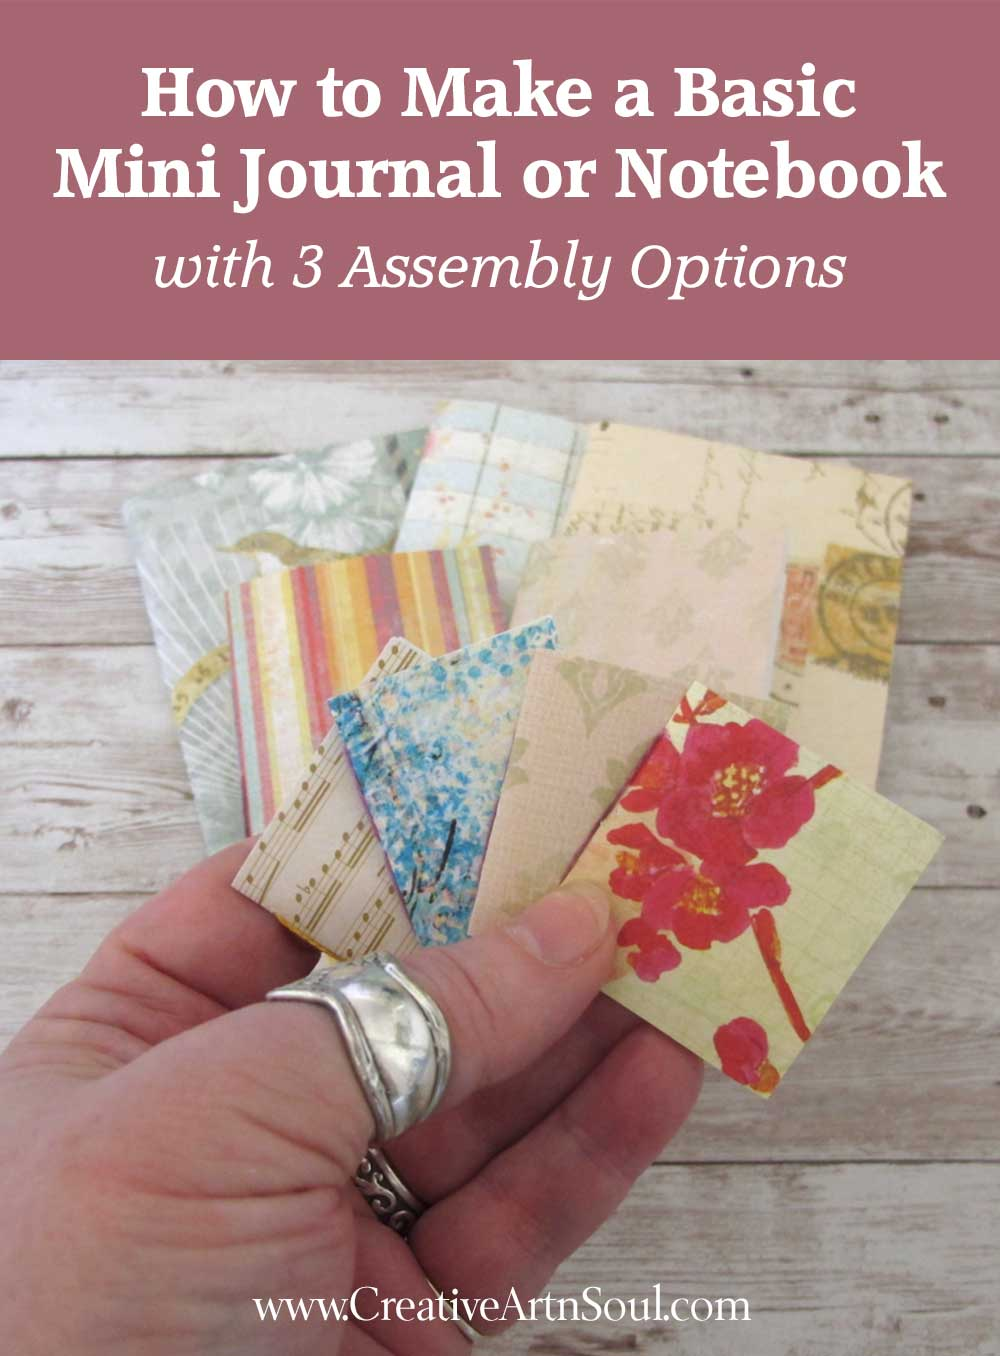 How to Make a Basic Mini Journal with 3 Assembly Options